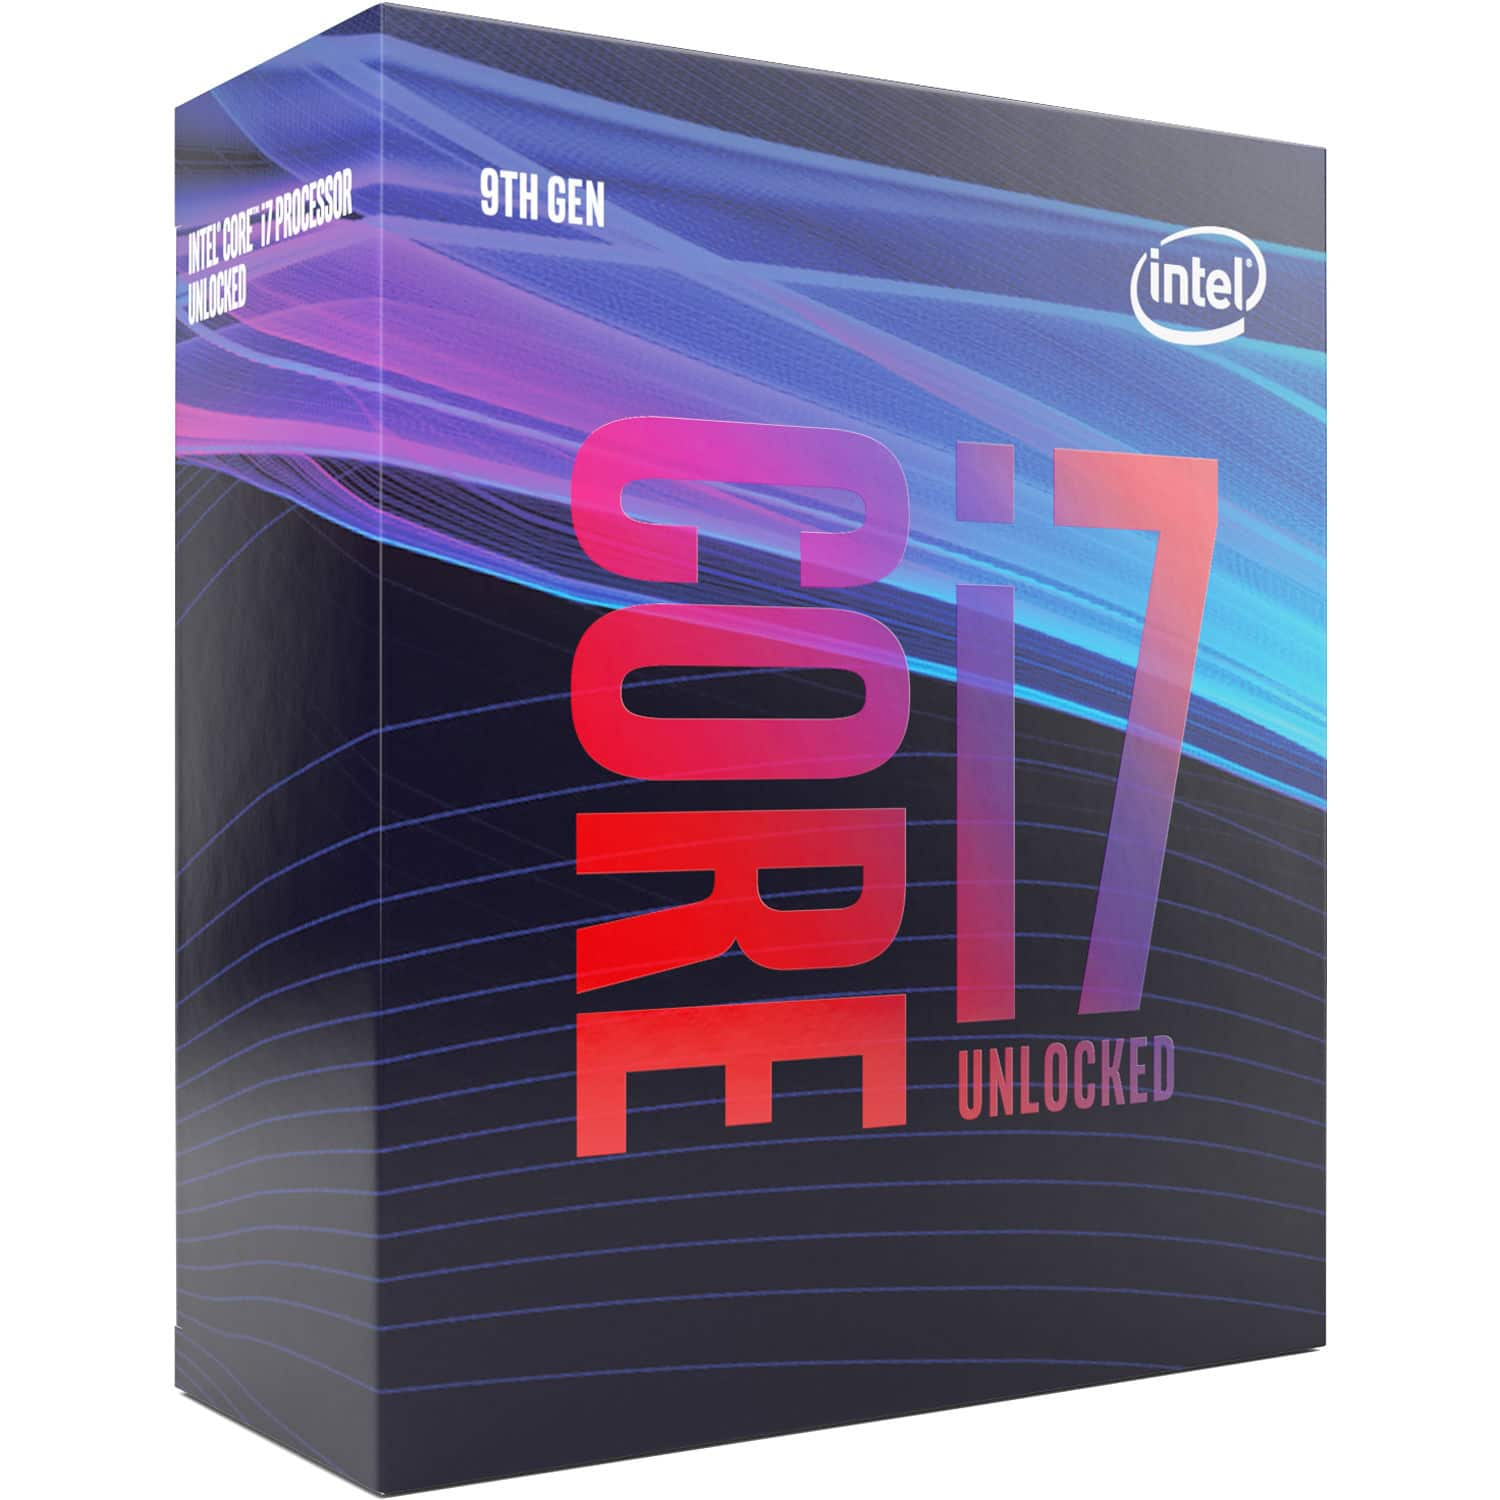 Intel Core i7 9700K Unlocked 9th Gen